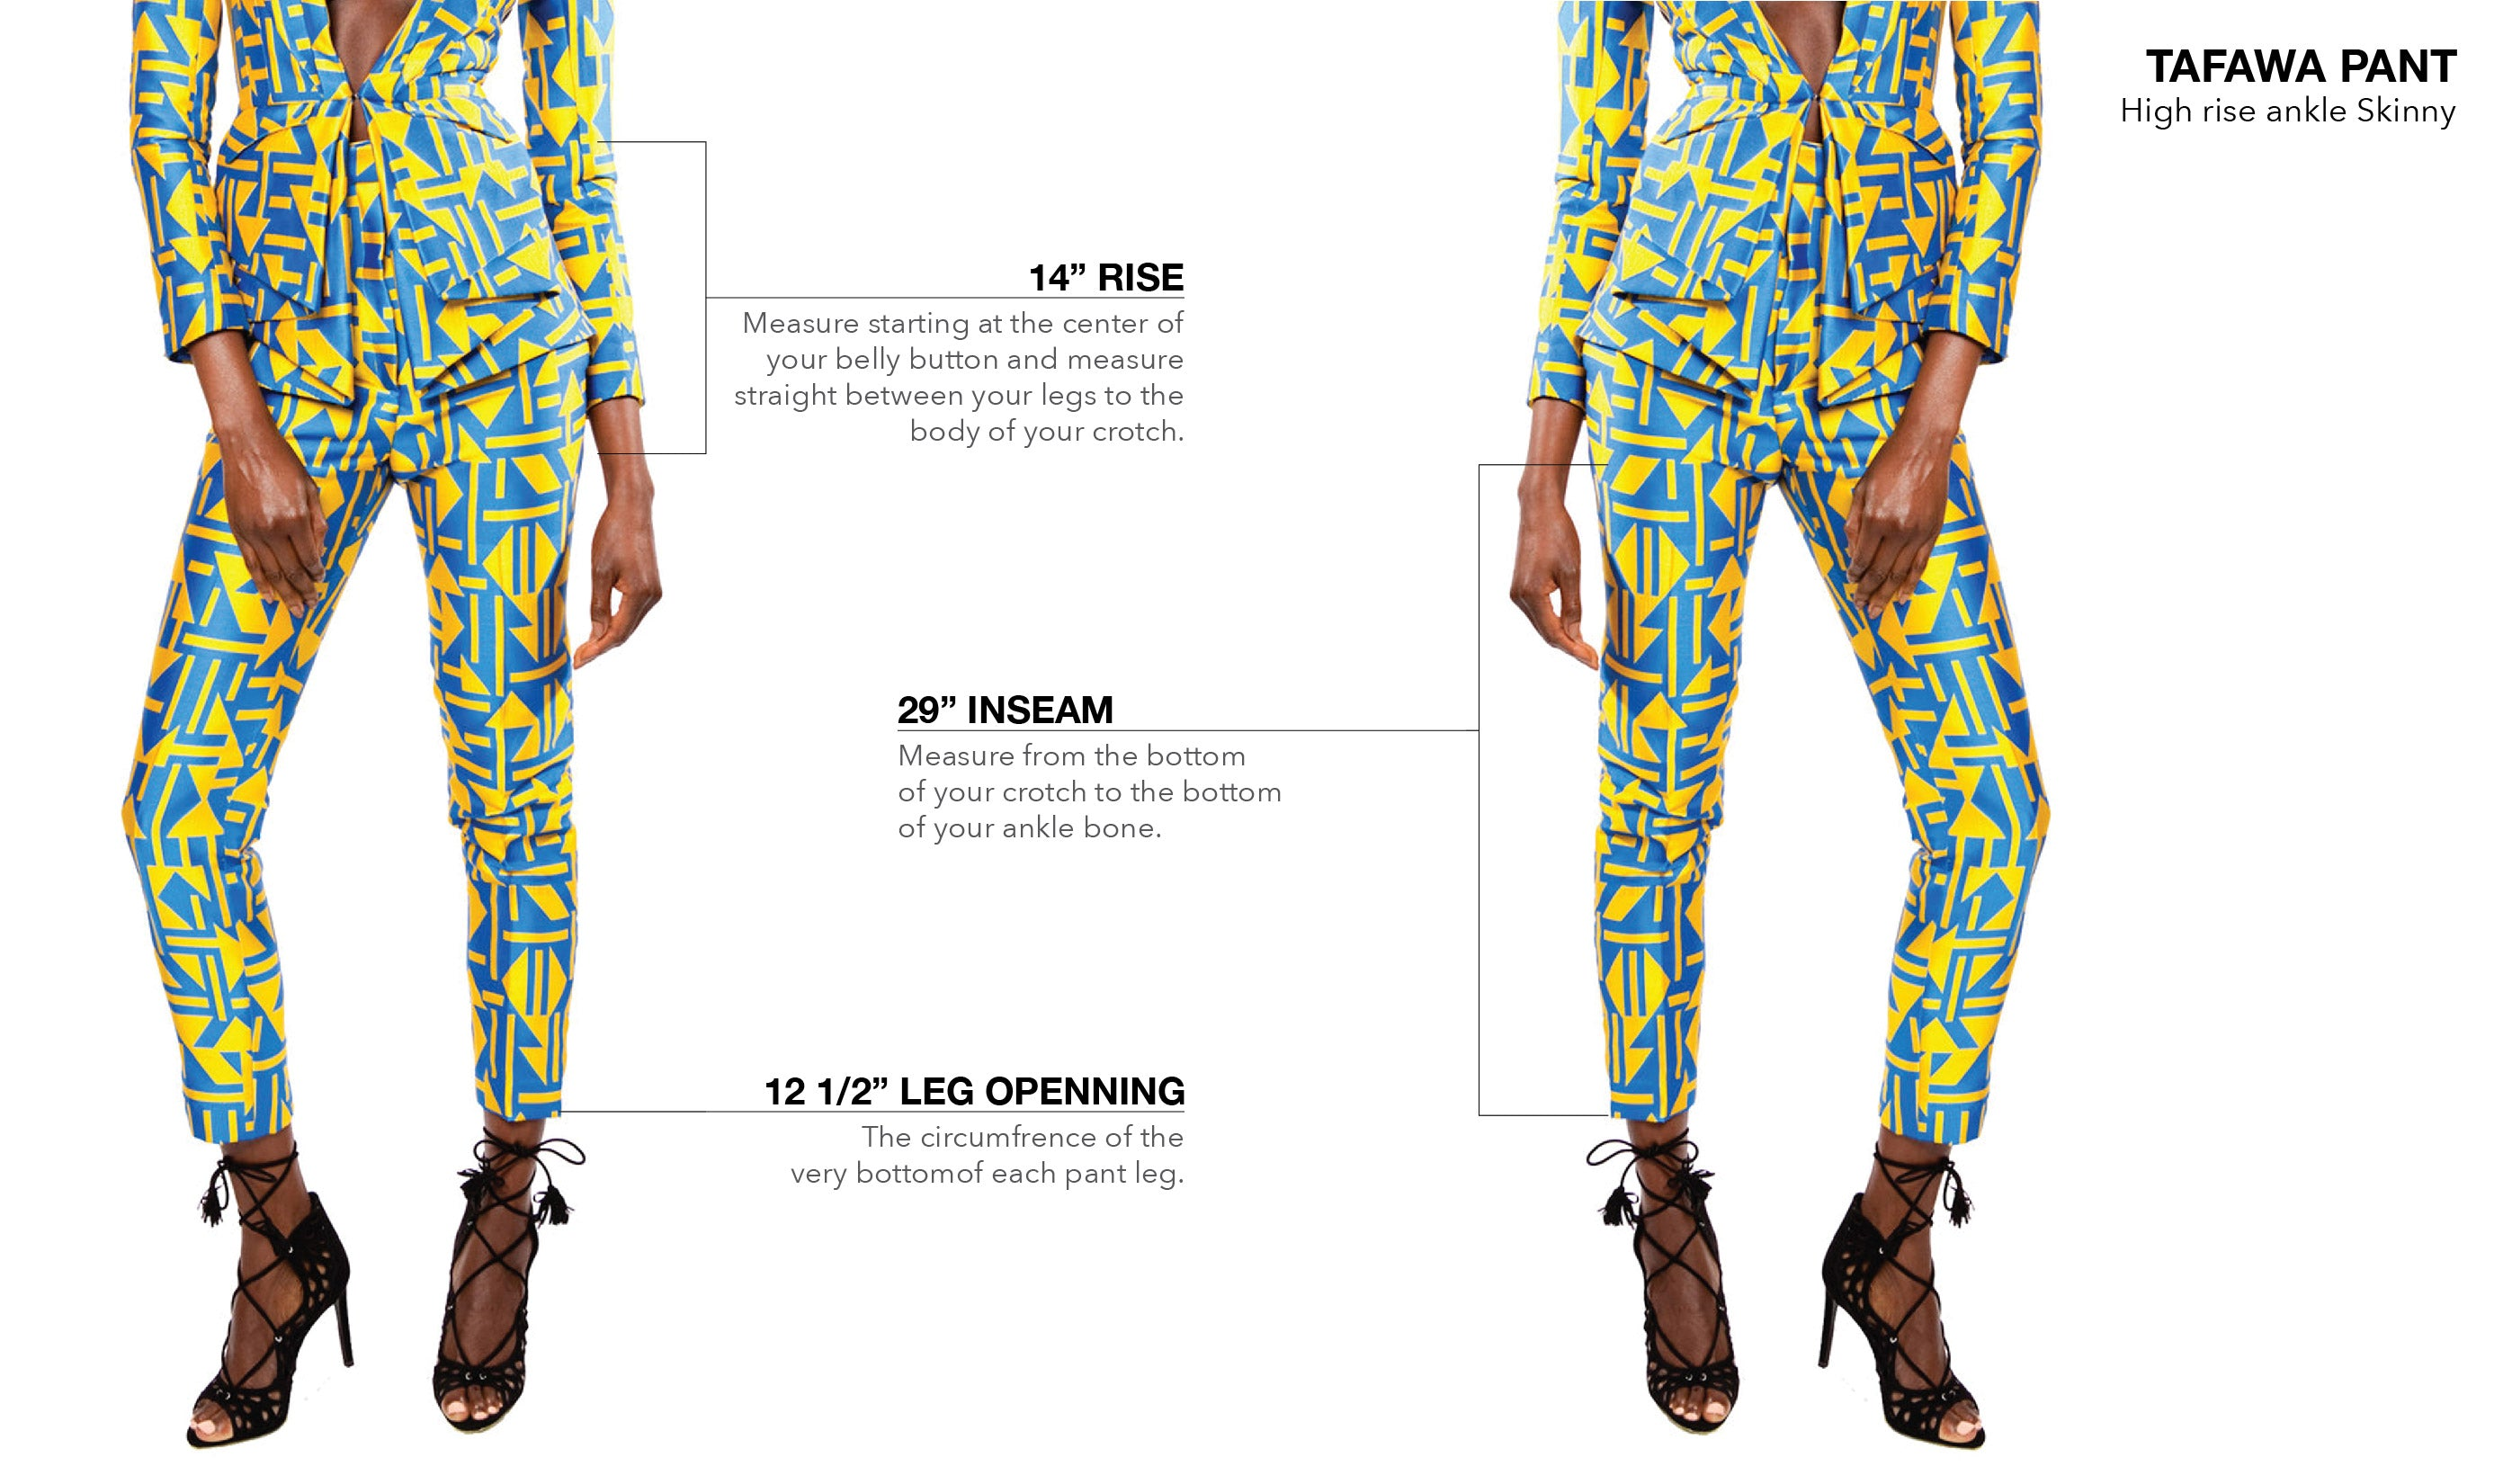 WASHINGTON ROBERTS TAFAWA PANT - FIT GUIDE